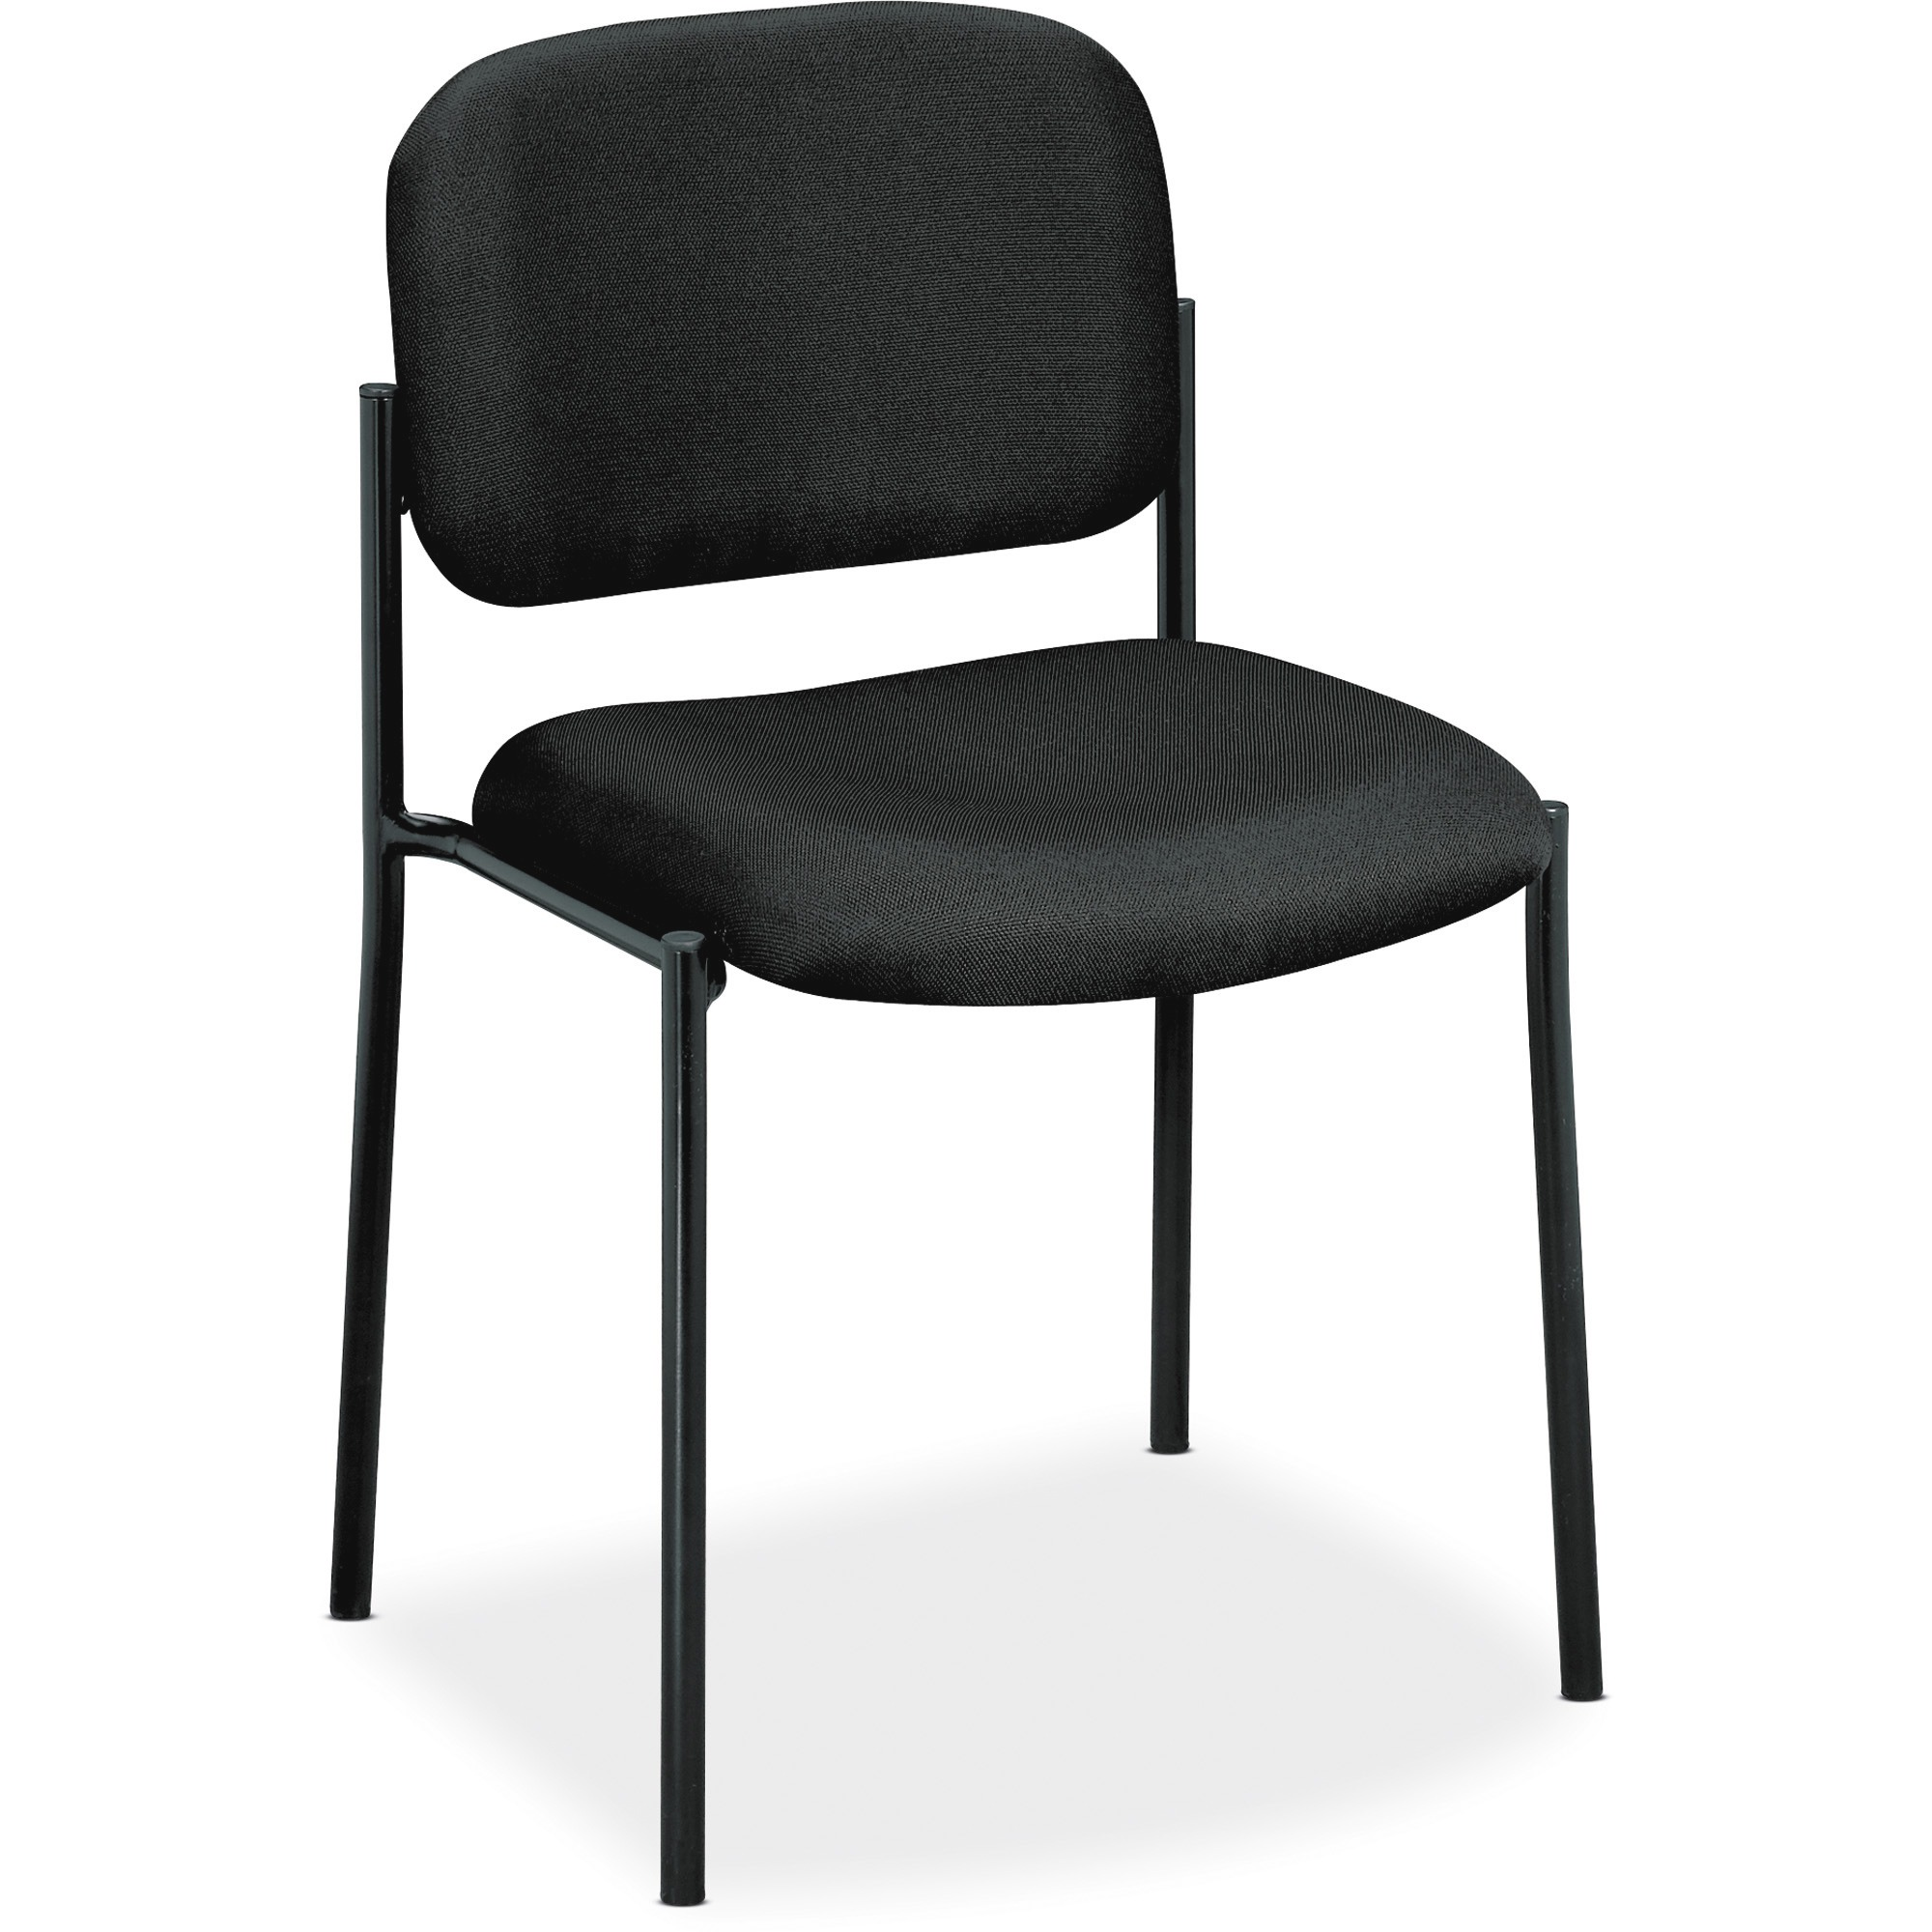 basyx VL606 Series Stacking Armless Guest Reception Waiting Room Chair, Black Fabric